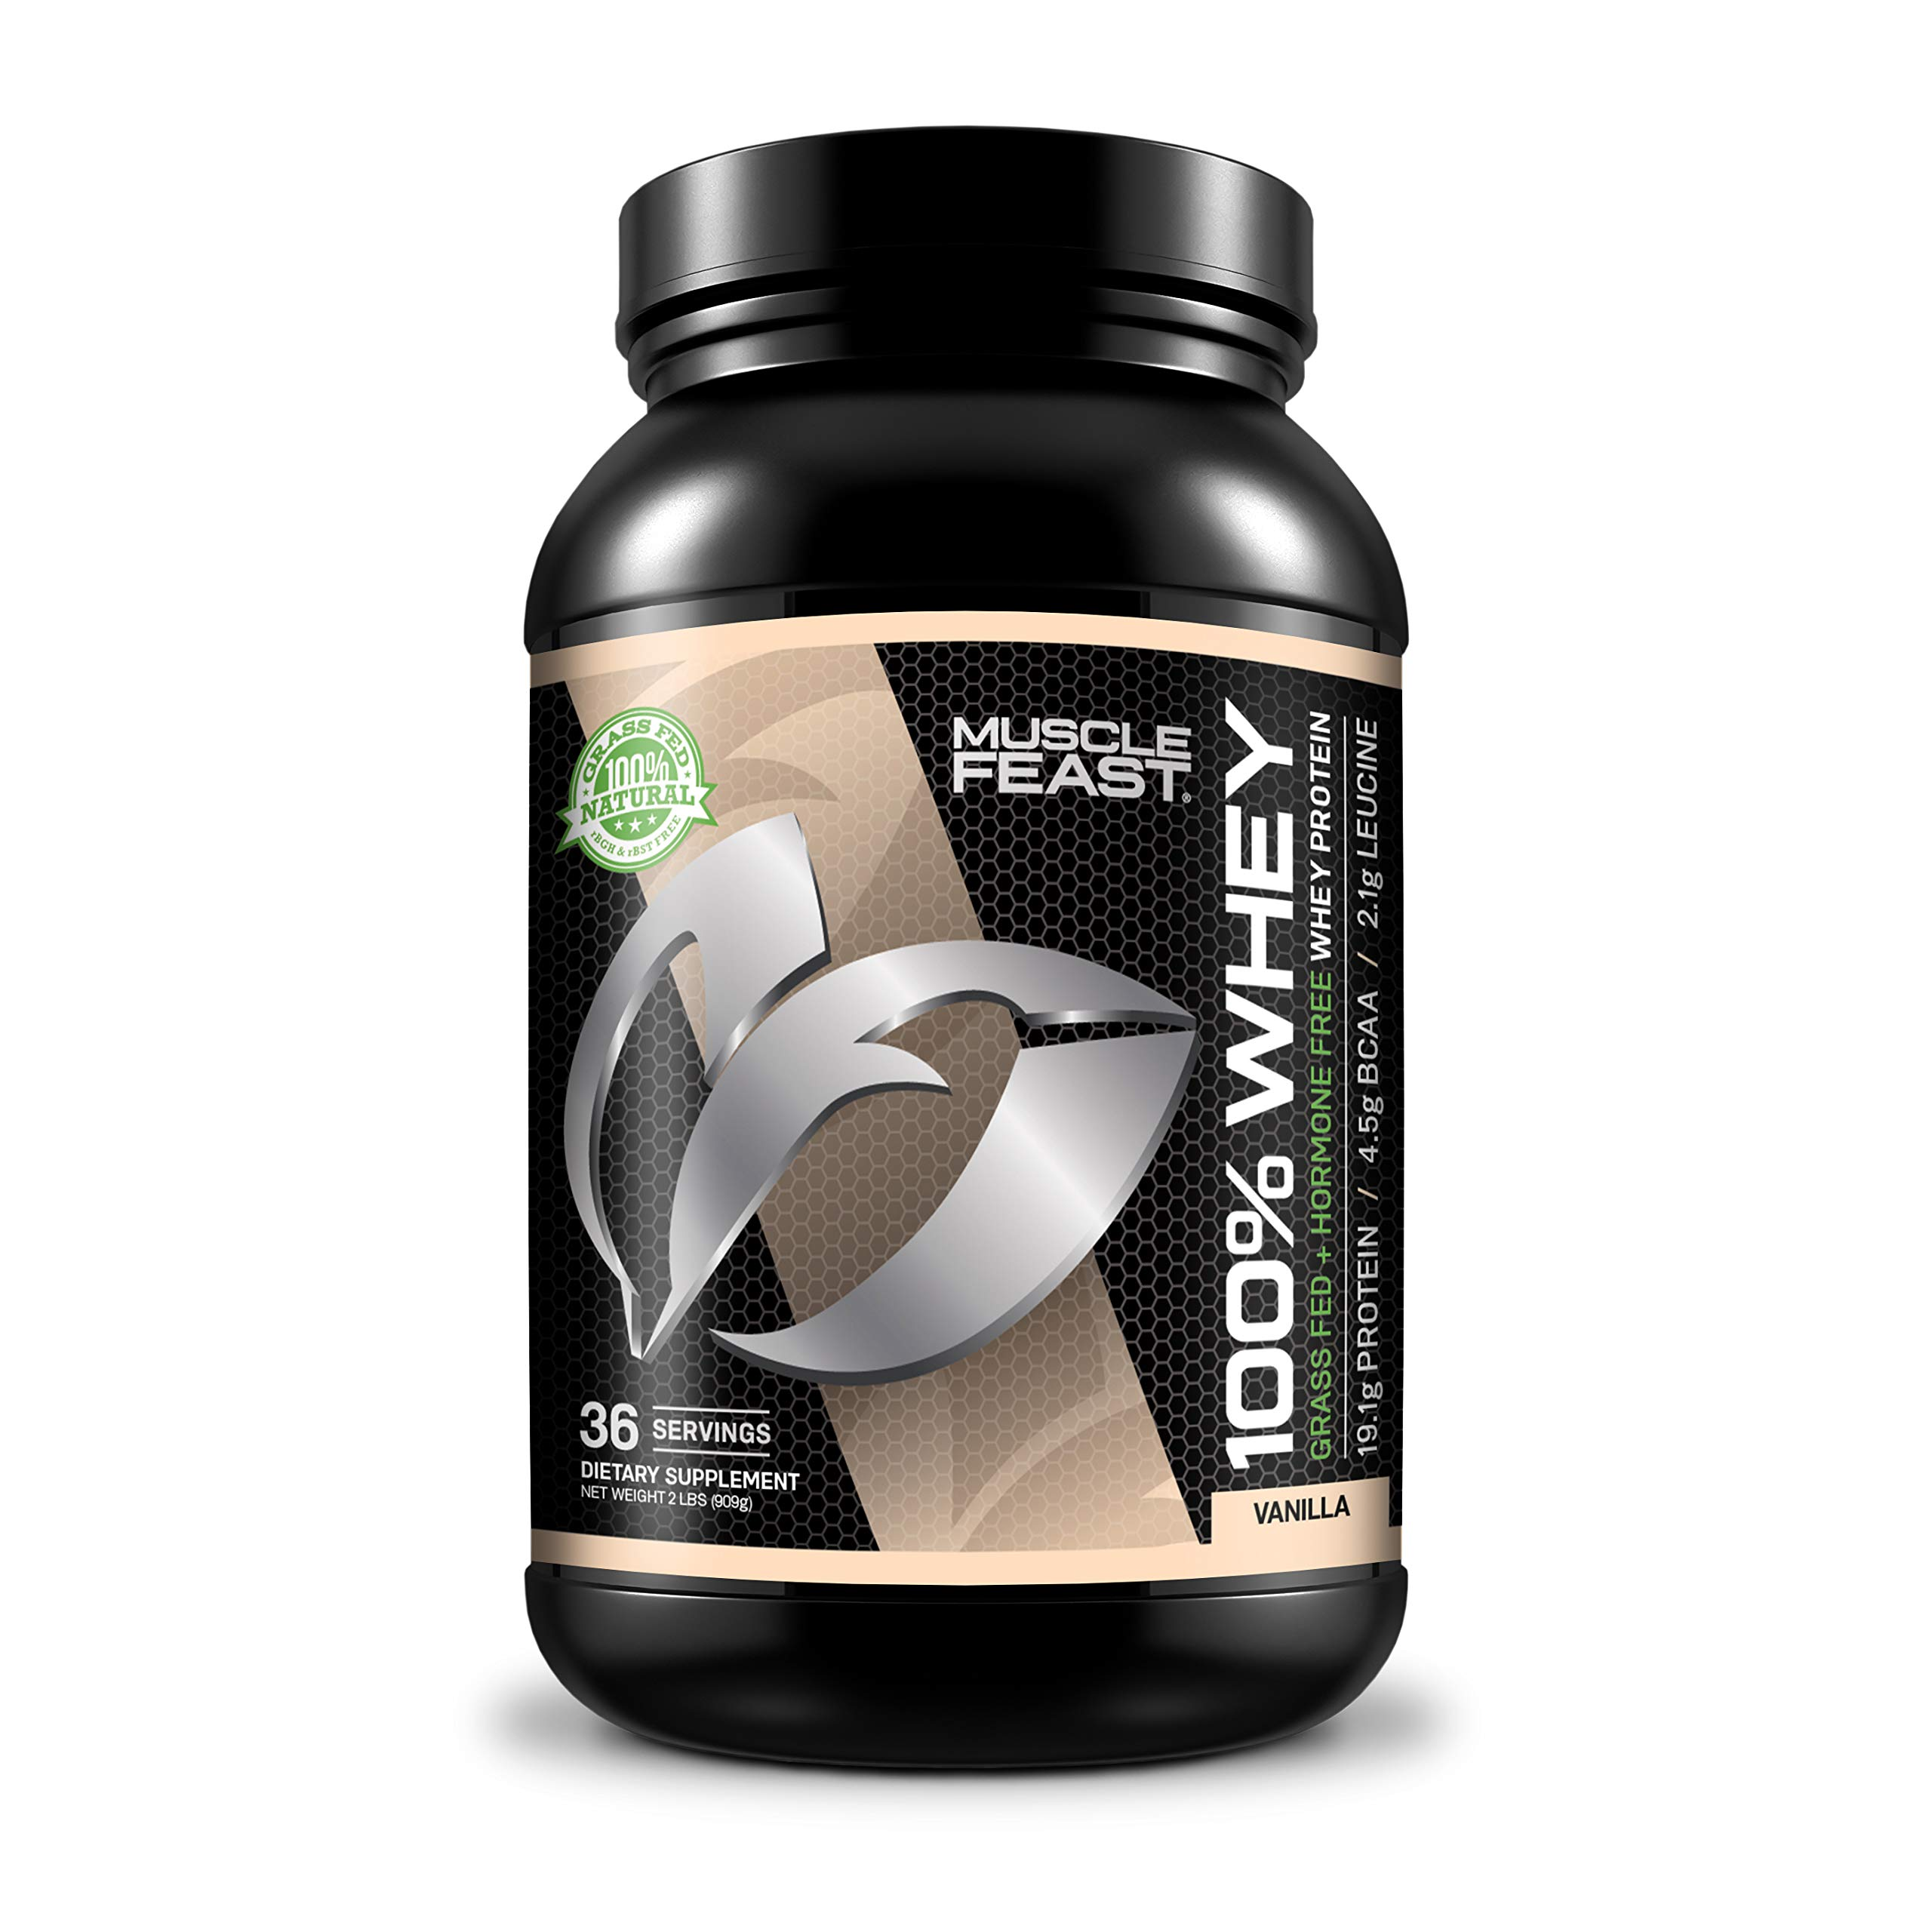 Muscle Feast 100% Whey Protein Blend, Grass Fed & Hormone Free, Blend of Concentrate, Isolate, and Hydrolyzed Whey Protein (2lb, Vanilla)